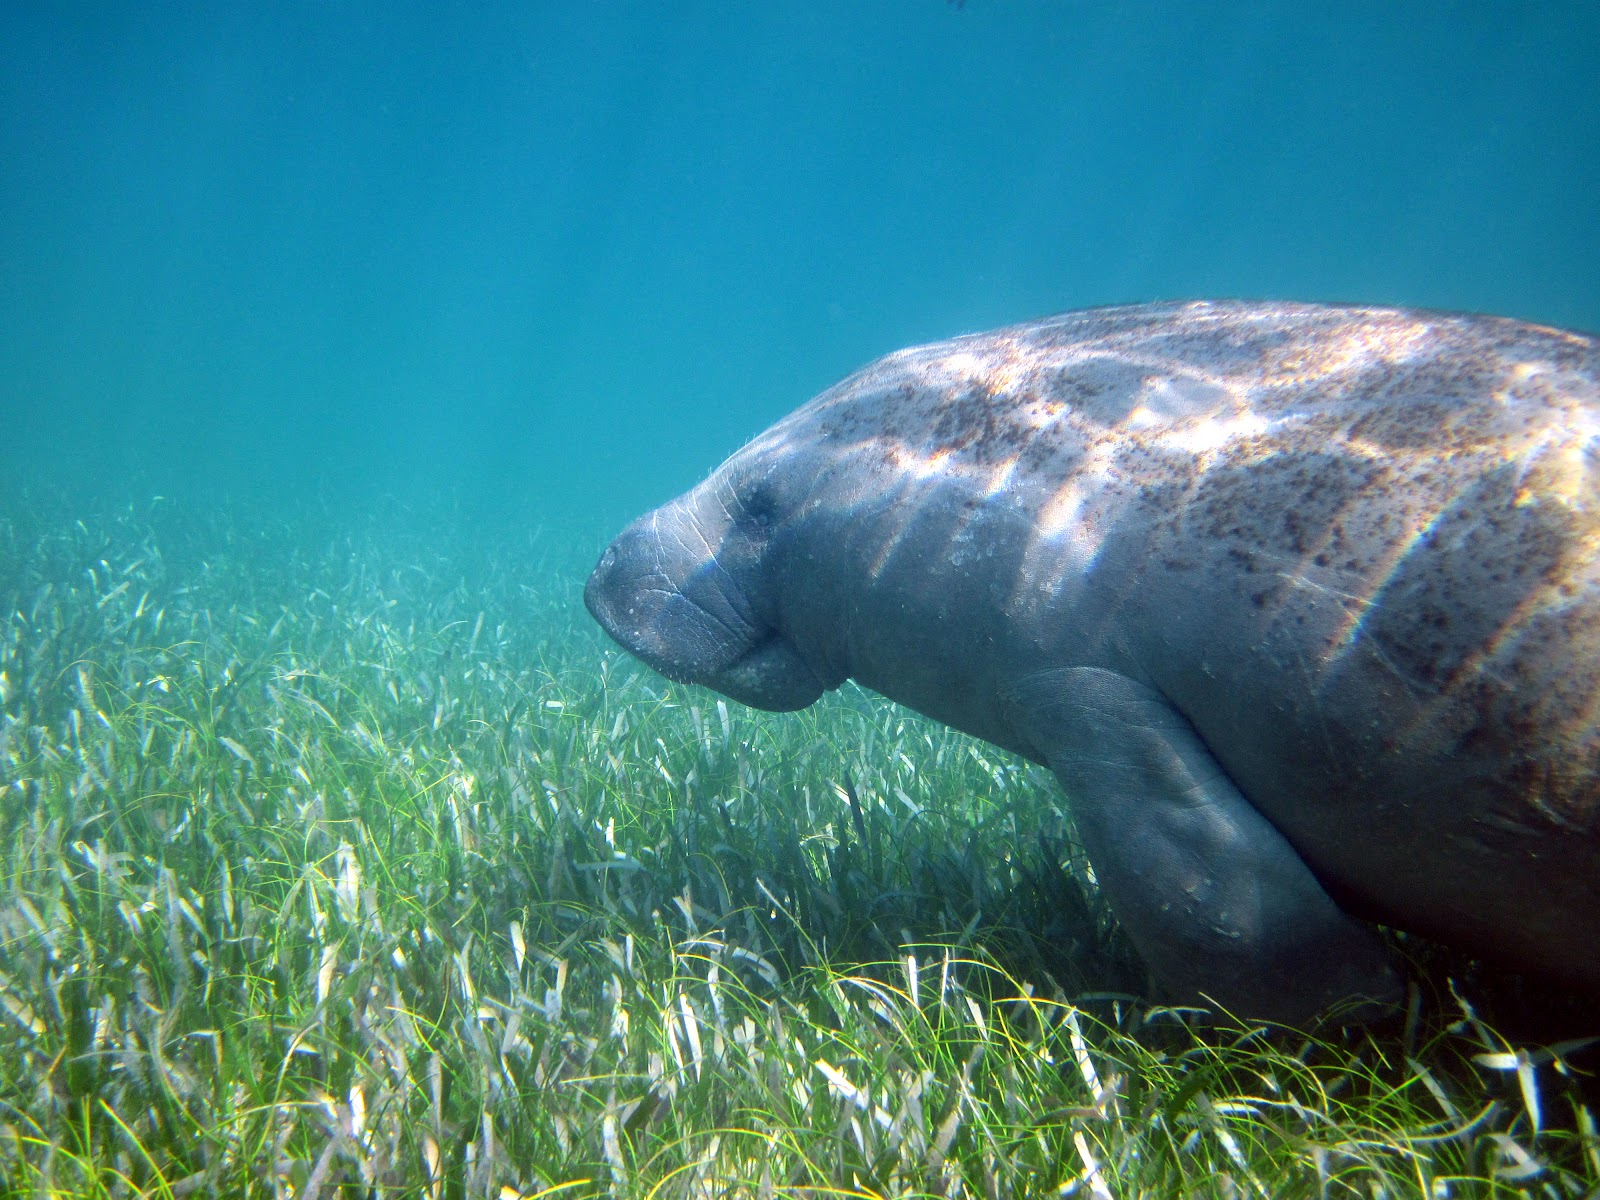 Seagrass beds ecosystem - Manatee Swimming Over Seagrasses Off Key Biscayne Fl Image Credit